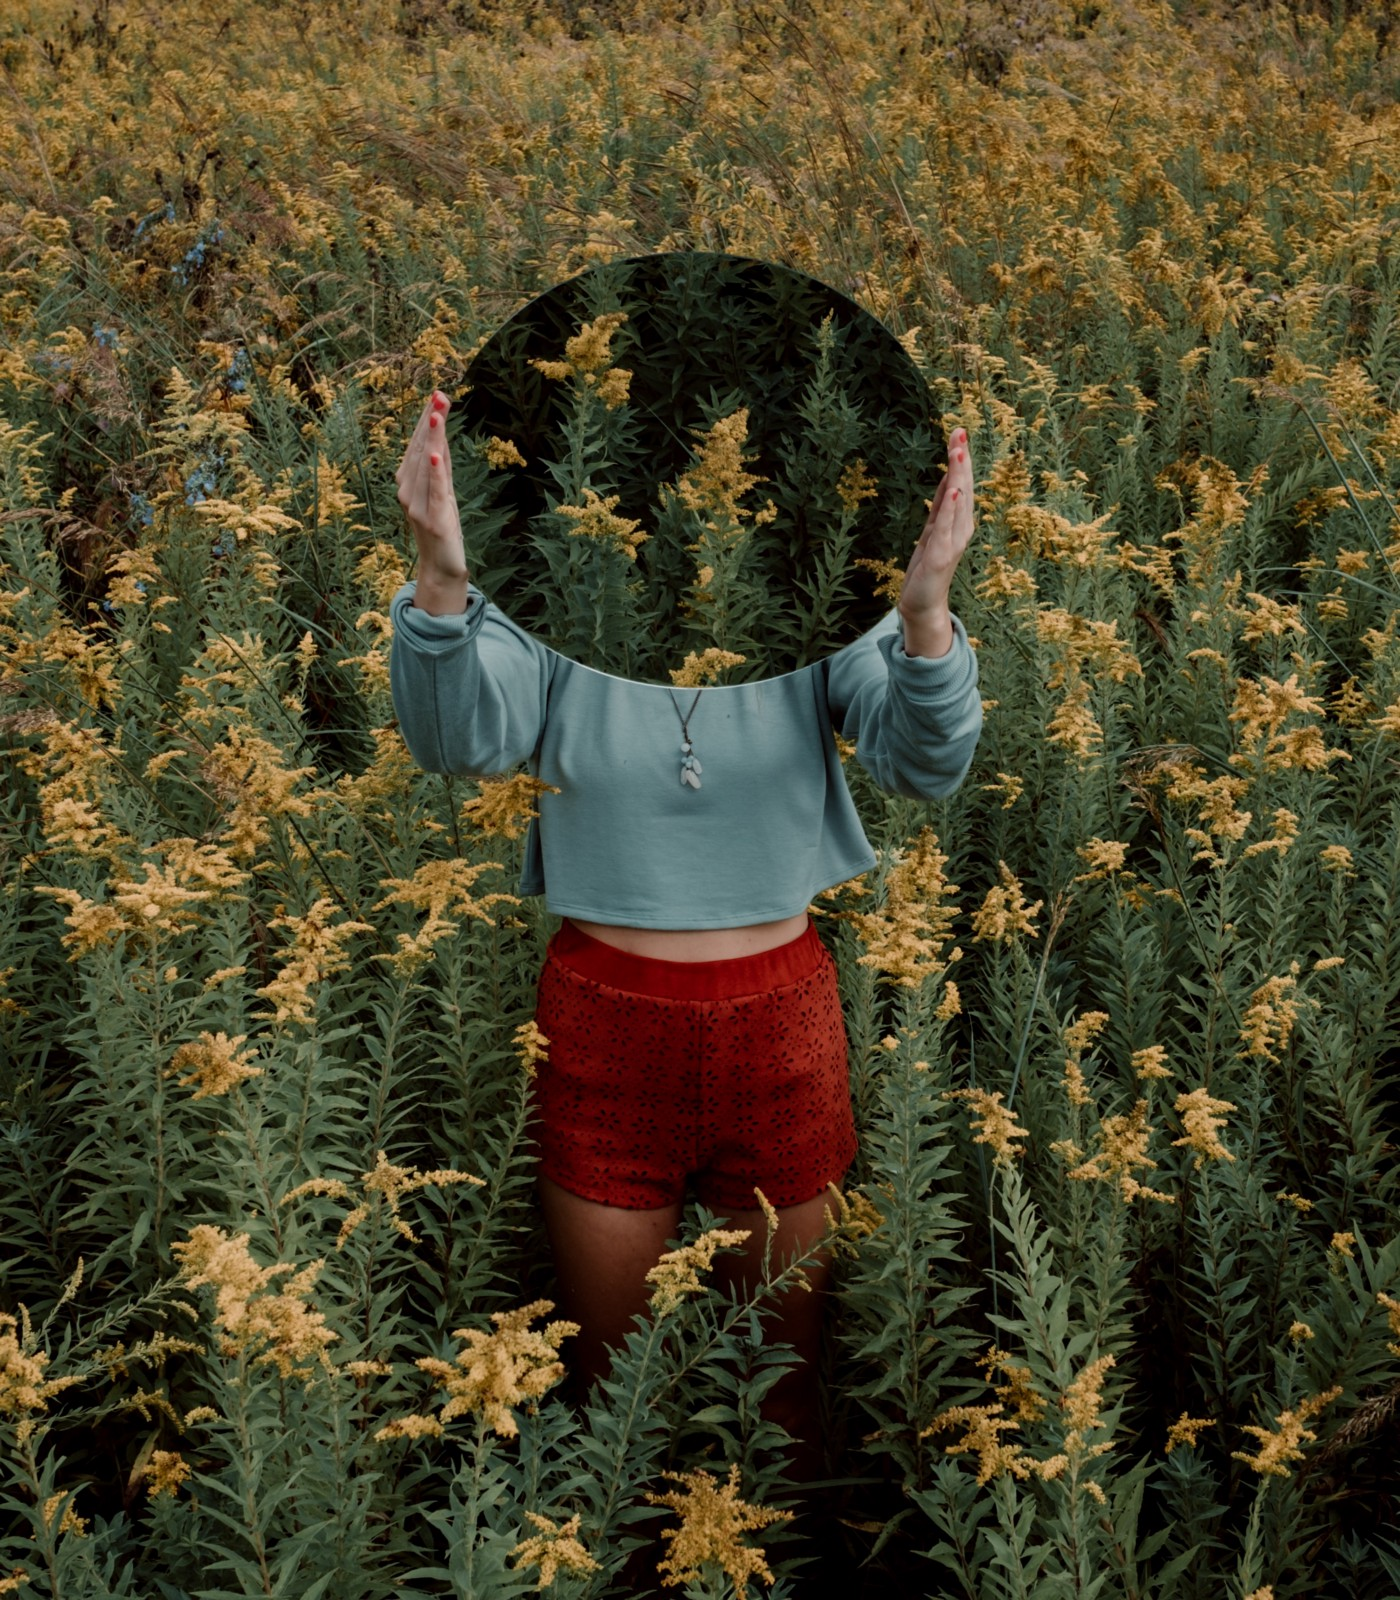 Girl holding oval mirror over her face, reflecting the field of yellow flowers she's standing in